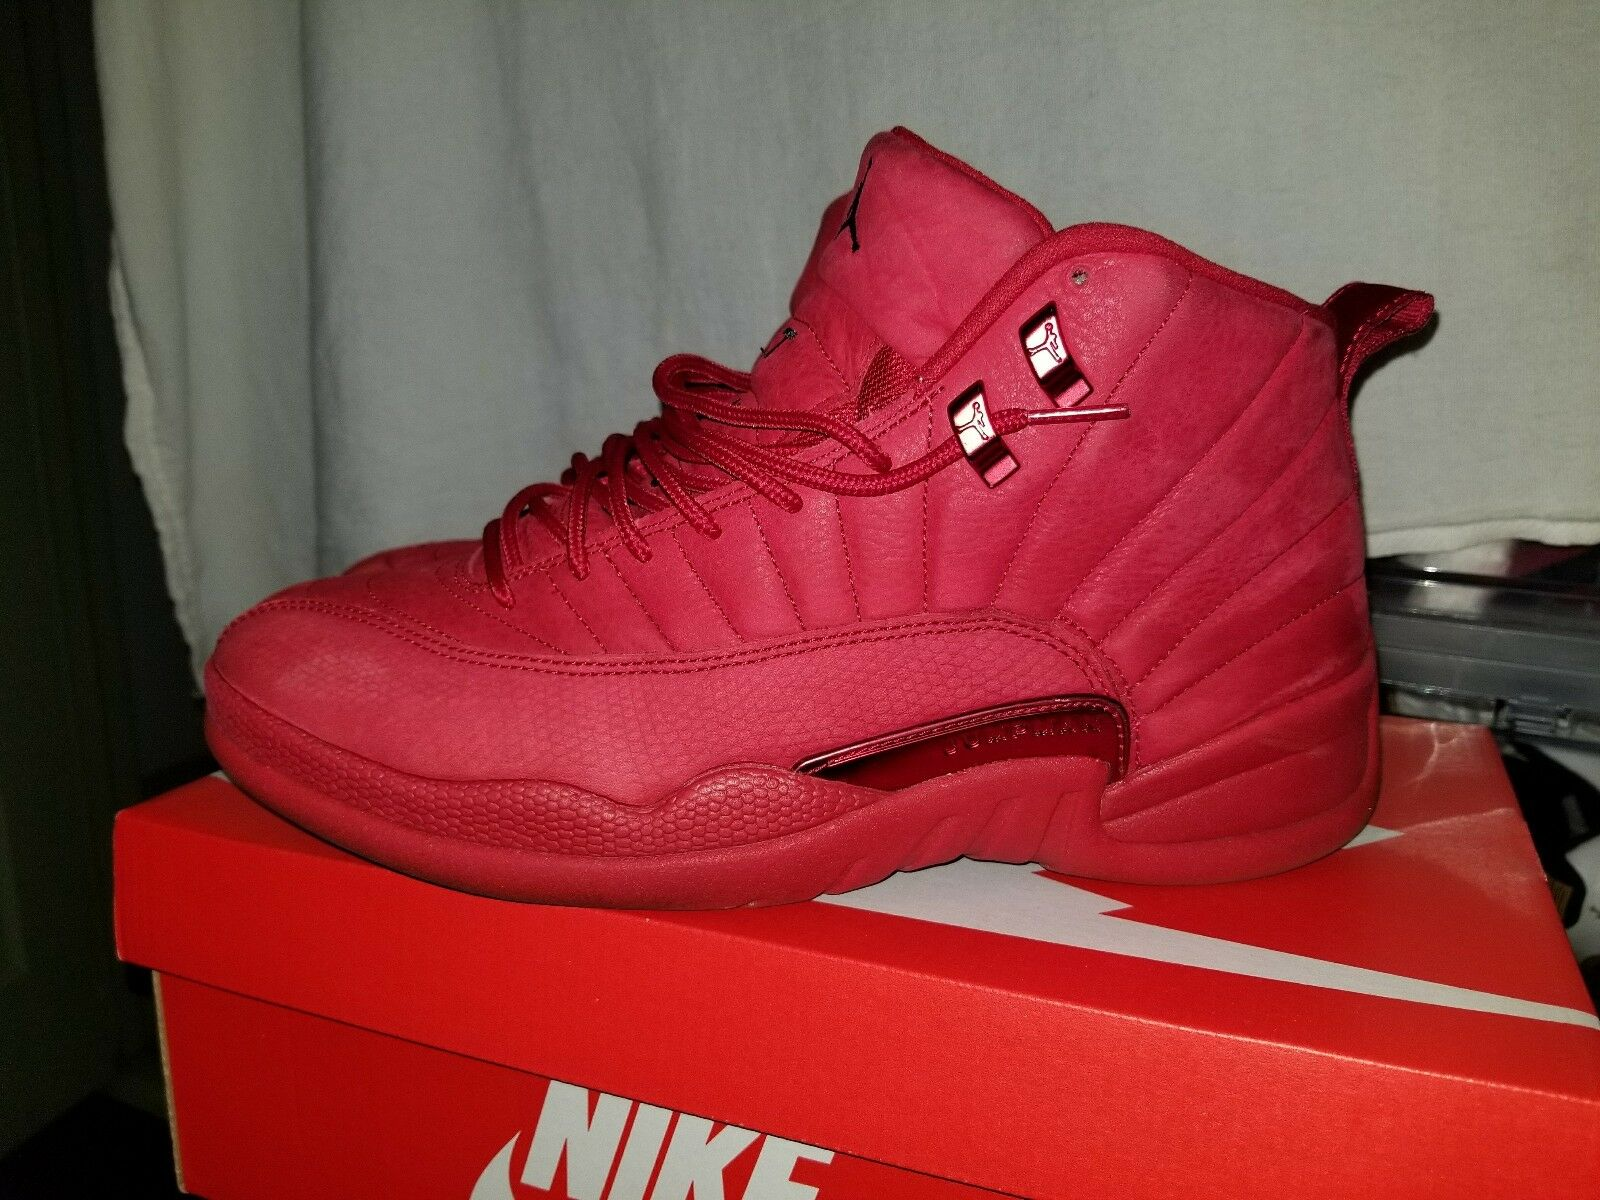 1ca30600fd3 Red Jordan 12s Size 10 nnvxyg2247-new shoes - kids.thebeautykemple.com